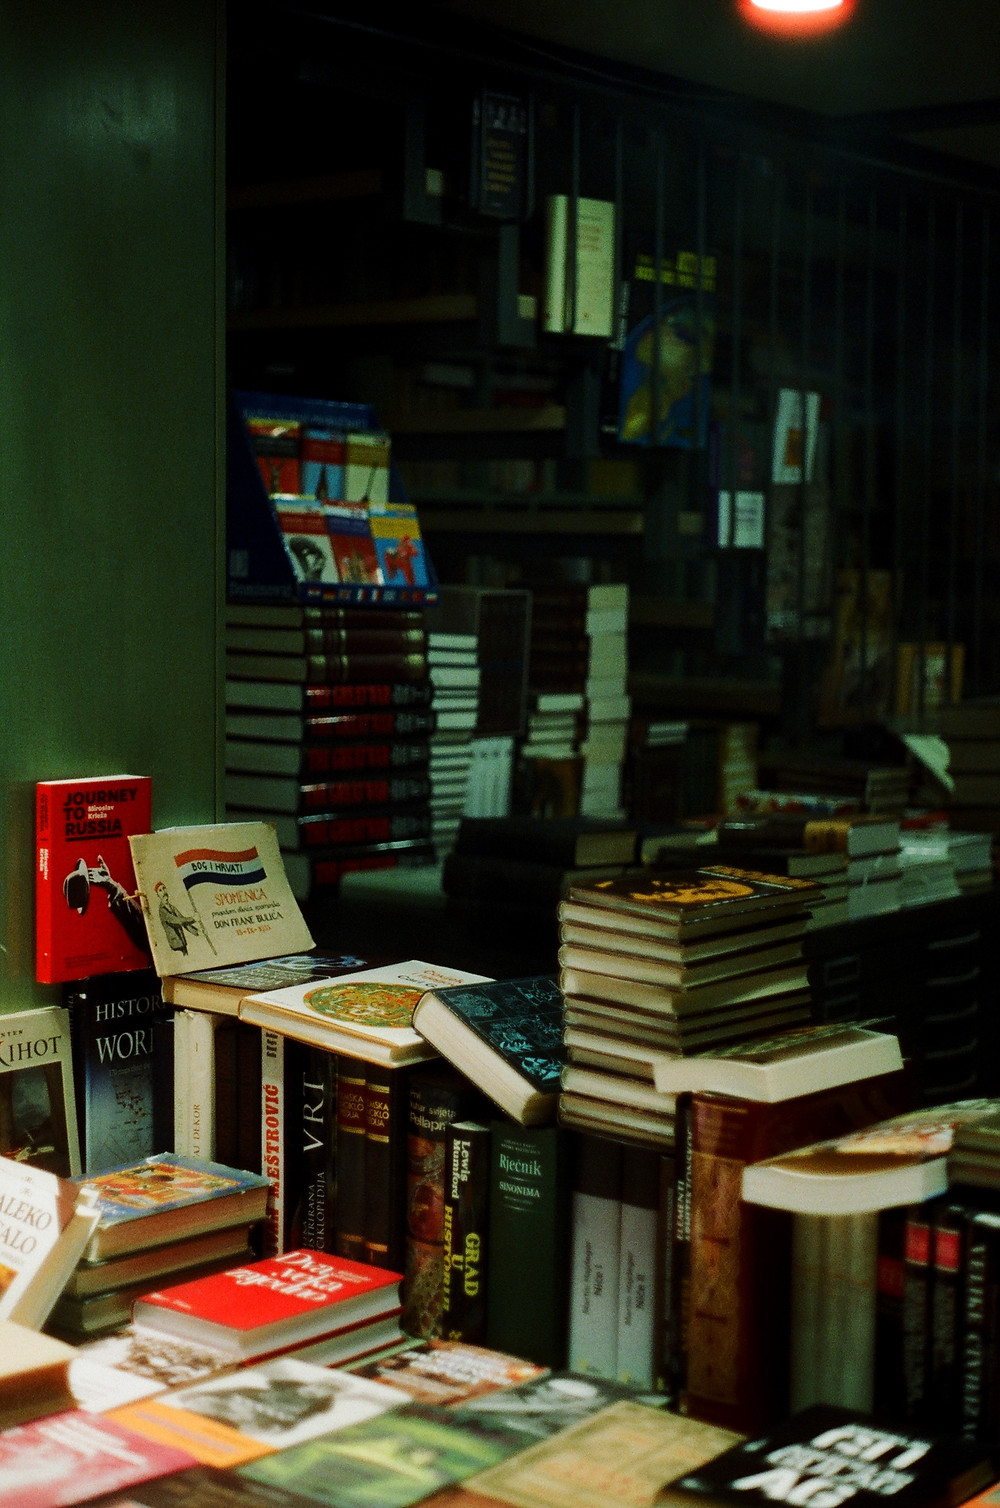 An image of the interior of a building, with several rows of cabinets covered with books. There are more filled bookshelves in the background and stacks of books in the foreground.